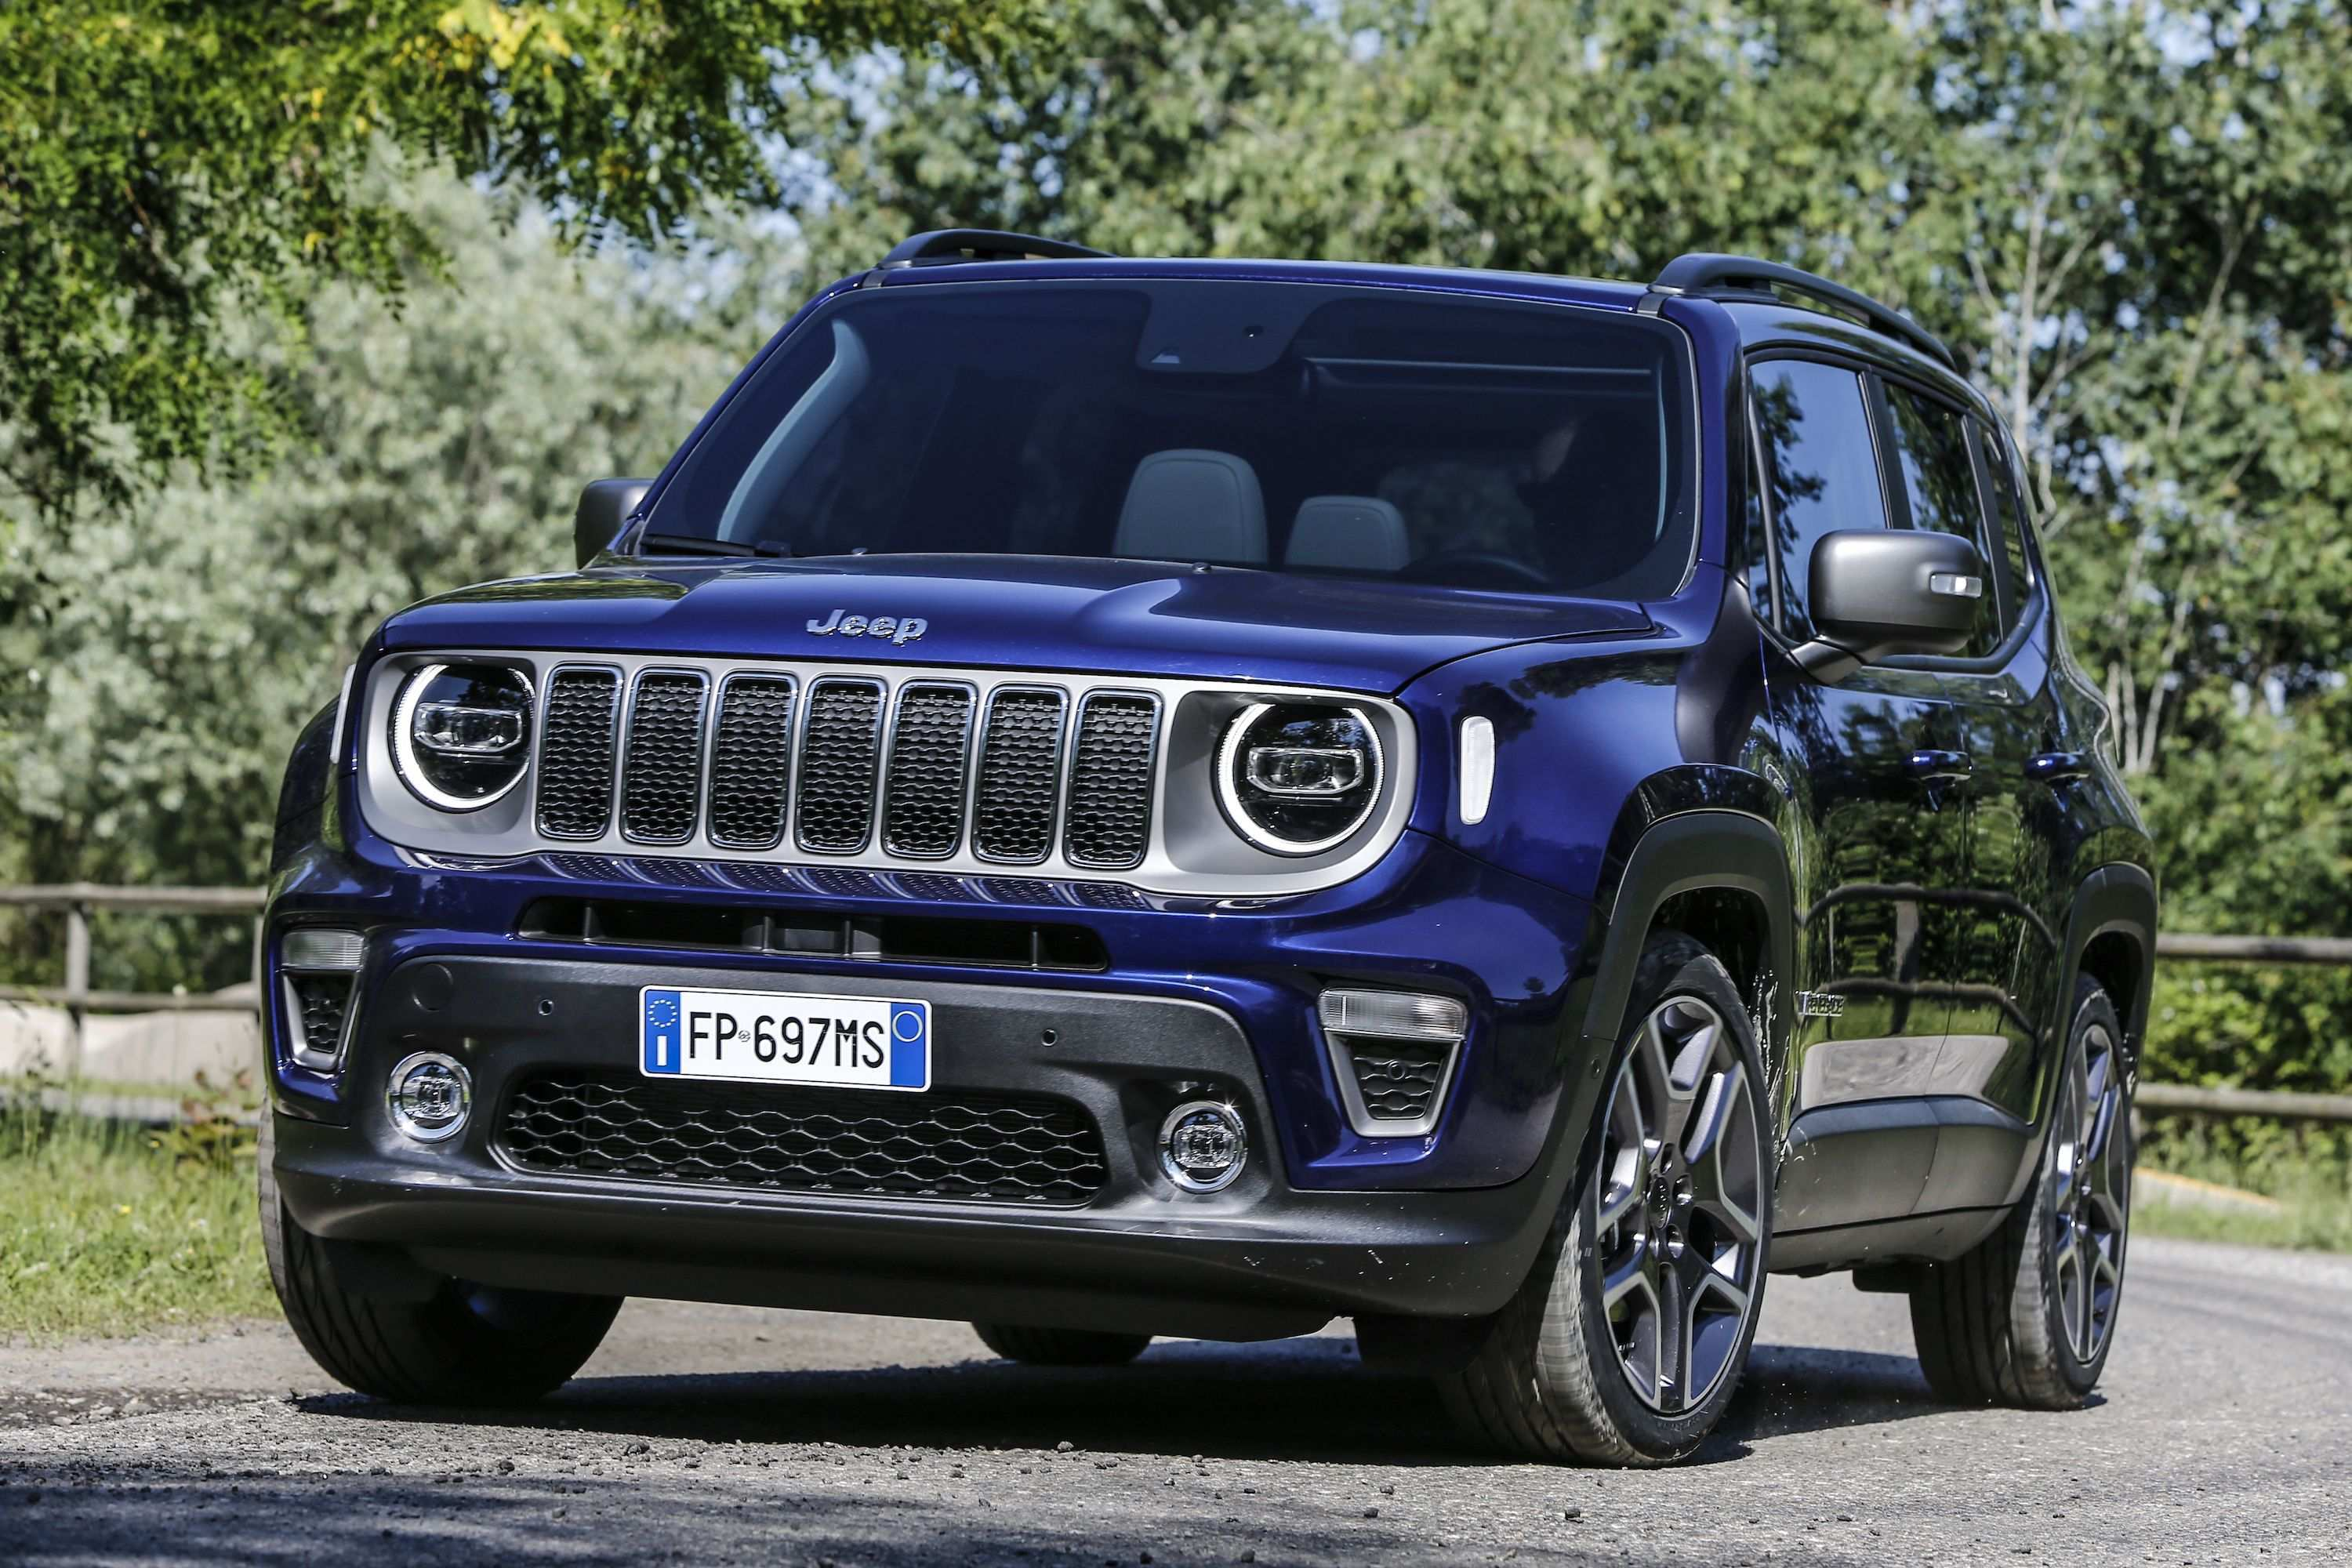 90 The New Jeep Usa 2019 Specs Spesification for New Jeep Usa 2019 Specs